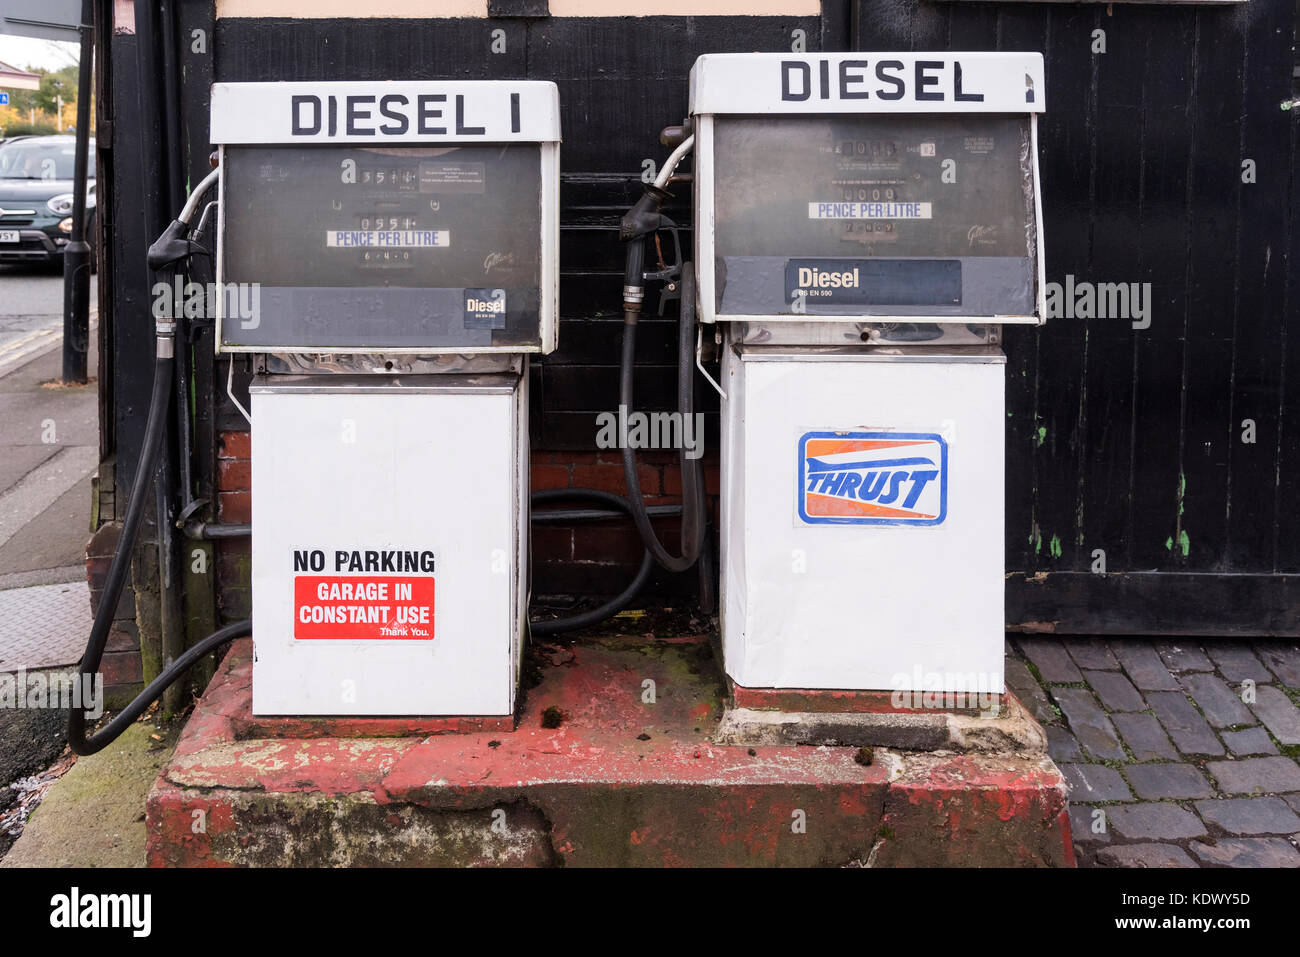 Two old fashion diesel pumps on a garage forecourt. - Stock Image